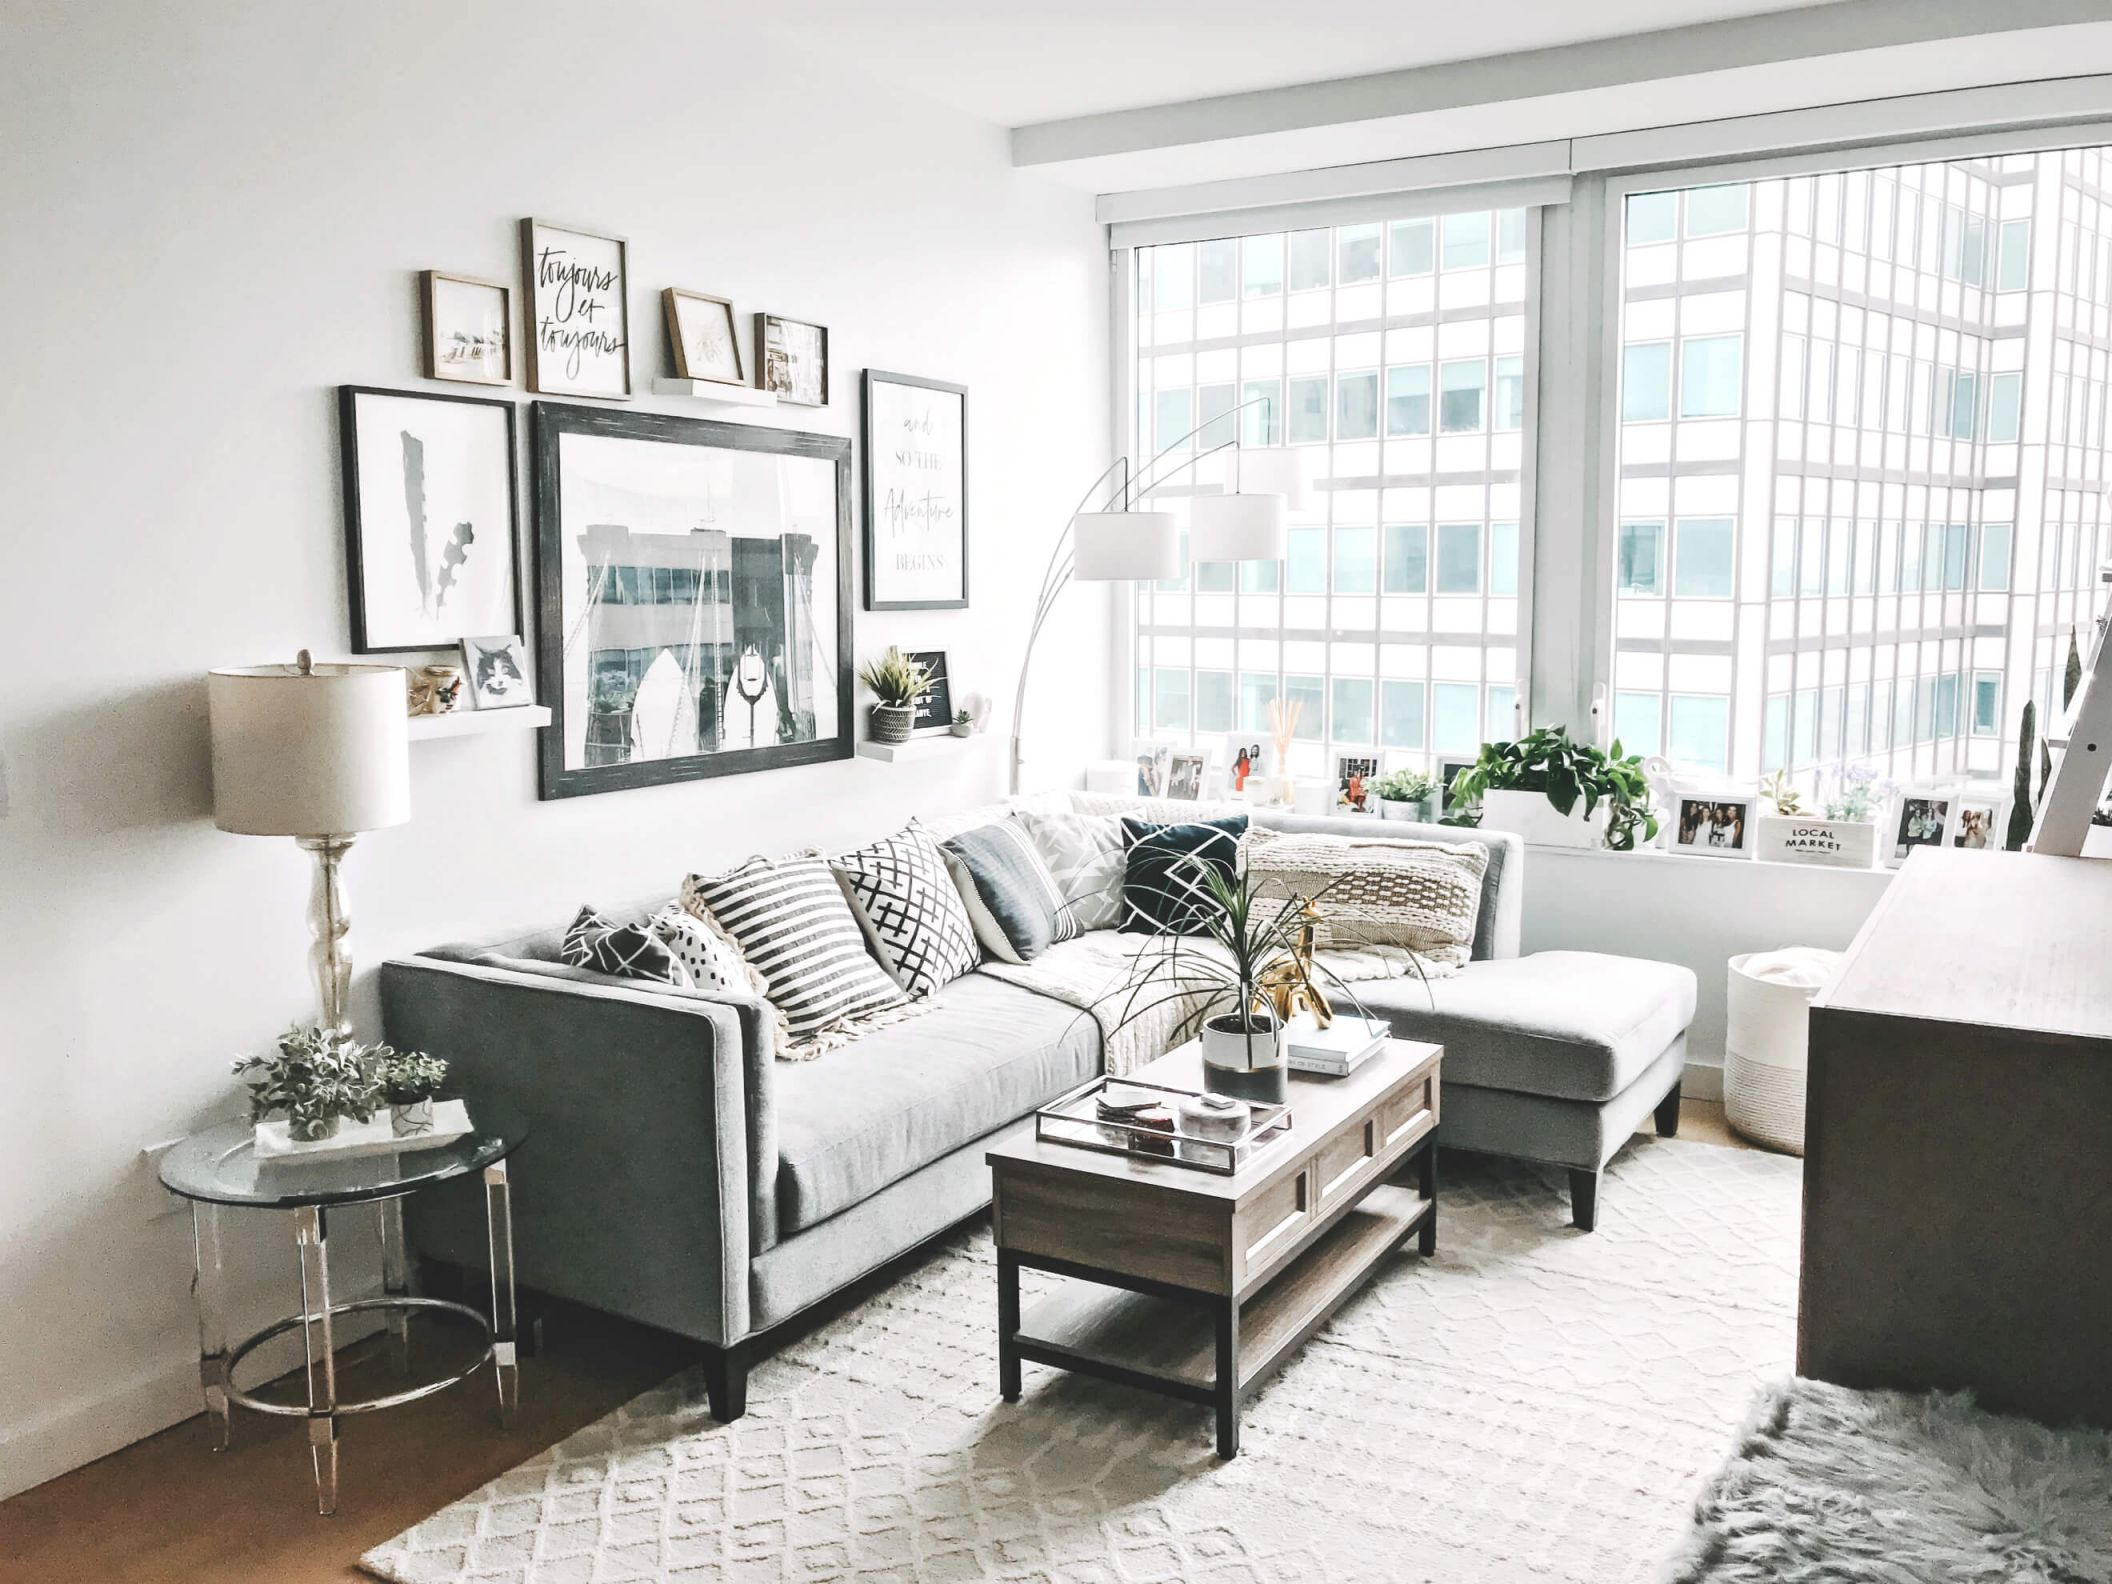 My Living Room Revamp With Raymour & Flanigan | To Be Bright in Raymour And Flanigan Sectional Sofas